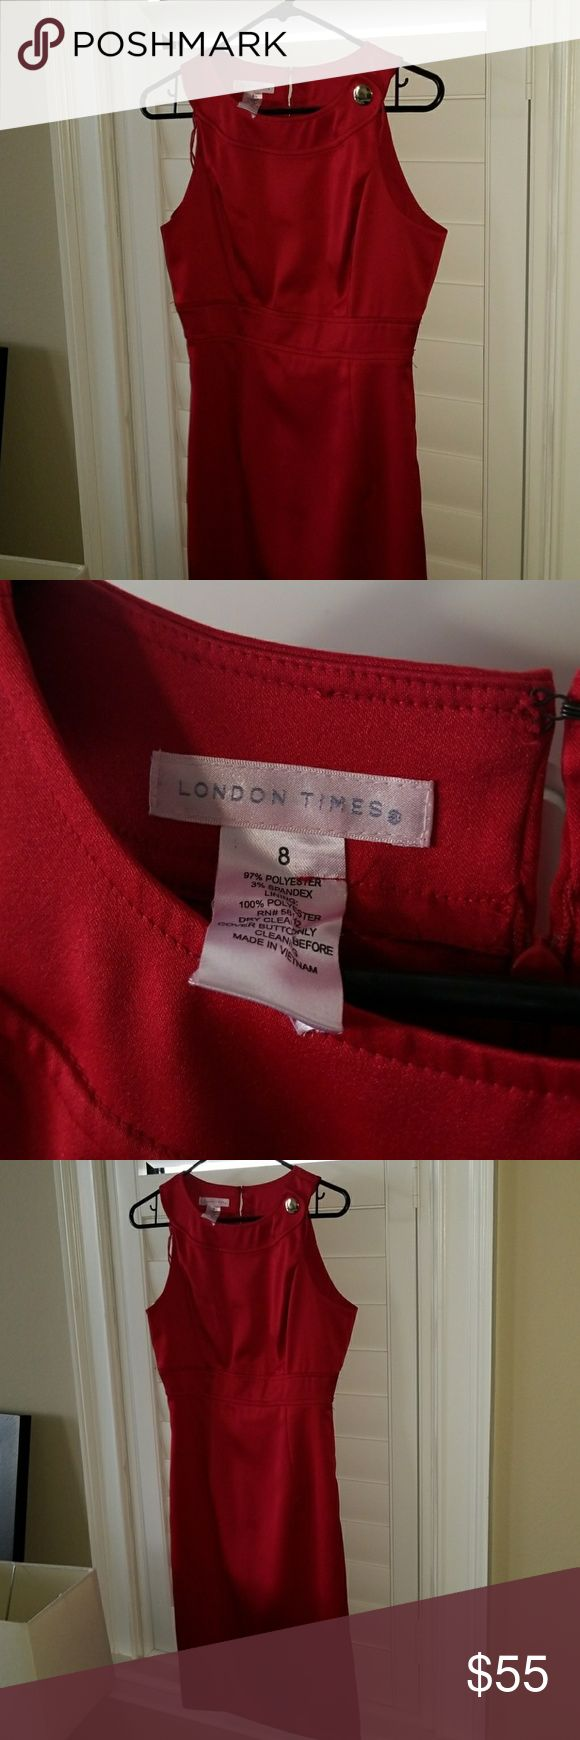 SALE!!!!!  London times red formal dress sz 8 Showstopper red London times dress. Wore it one time to a sorority event. Its flawless. Red looks good on all do in tones, definitely a must for an event. London Times Dresses Midi